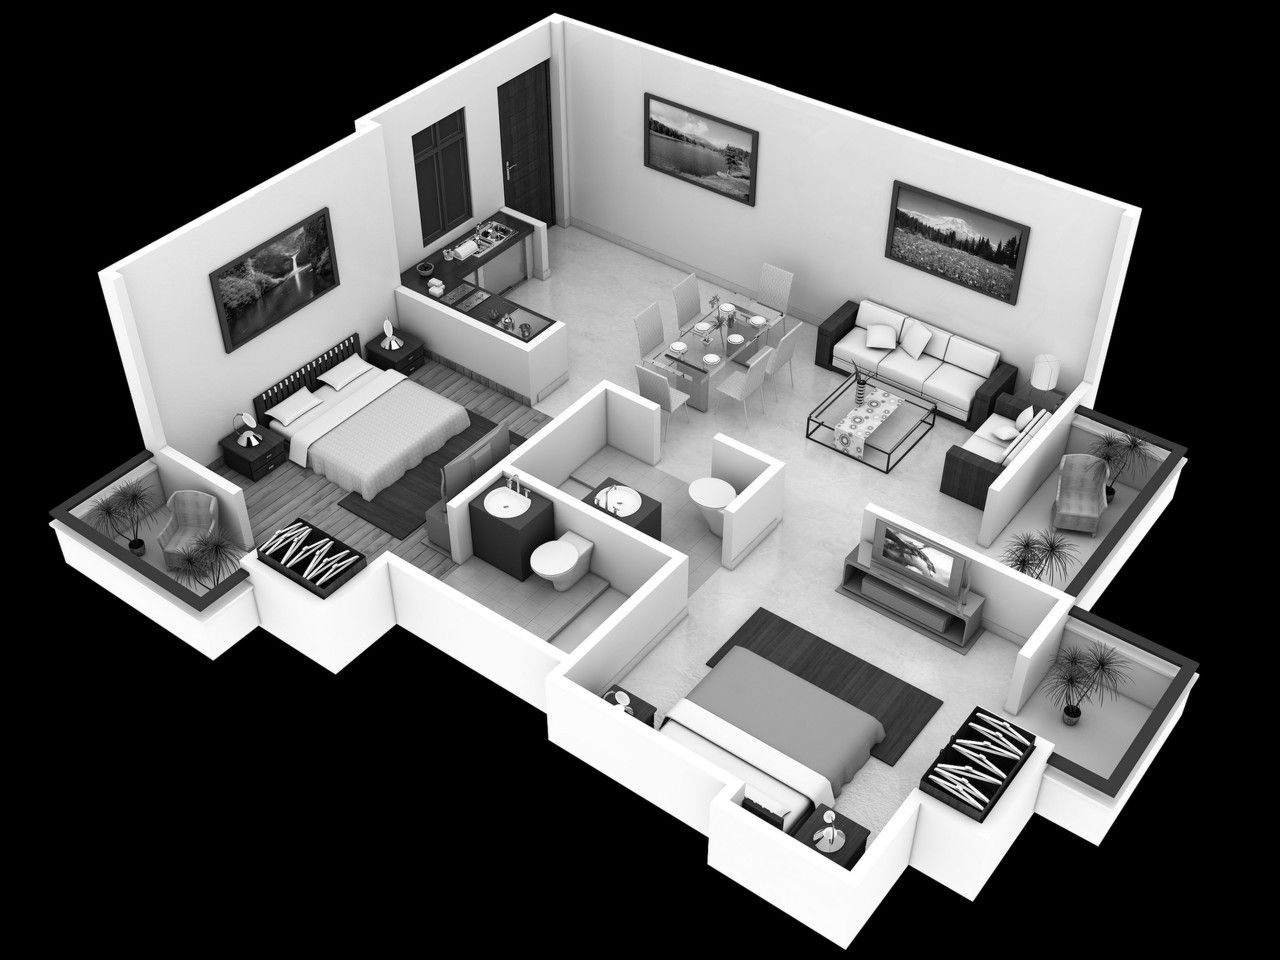 Alluring Small House Ideas Style Excellent House Interior